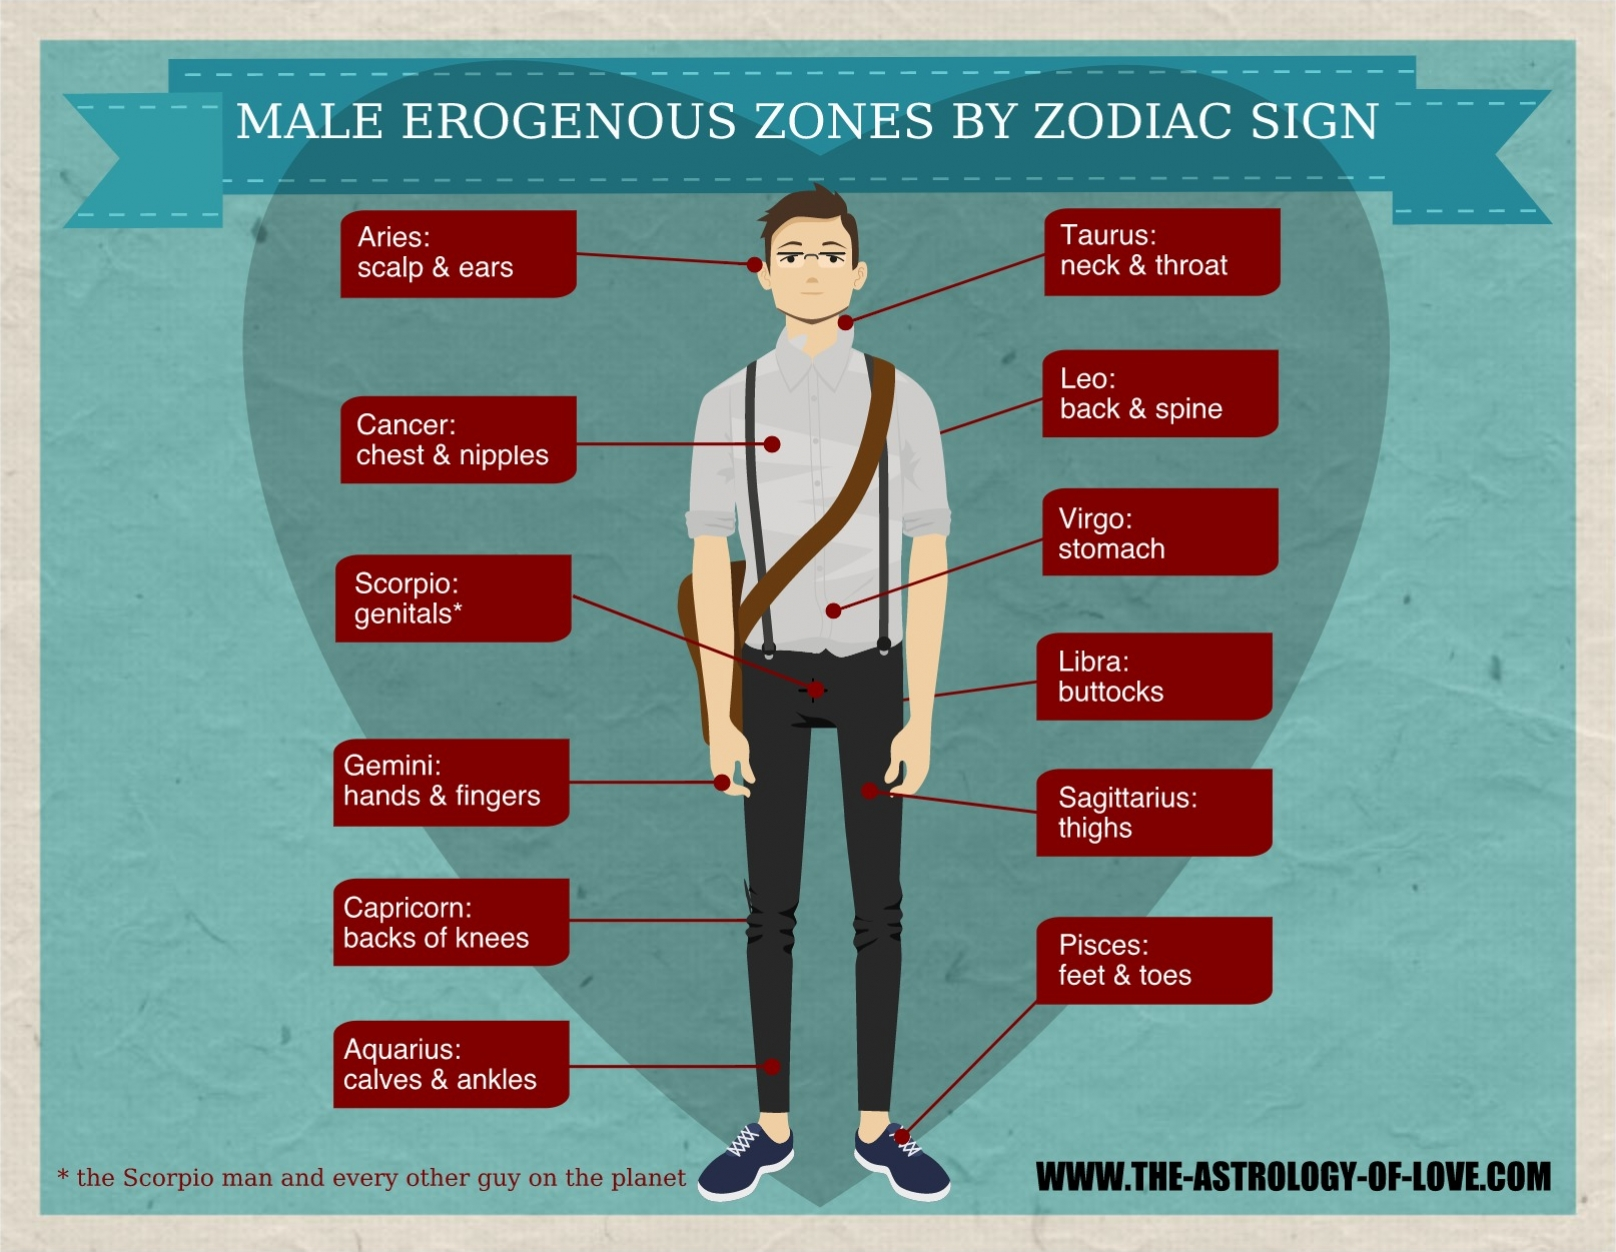 Erogeneous zone